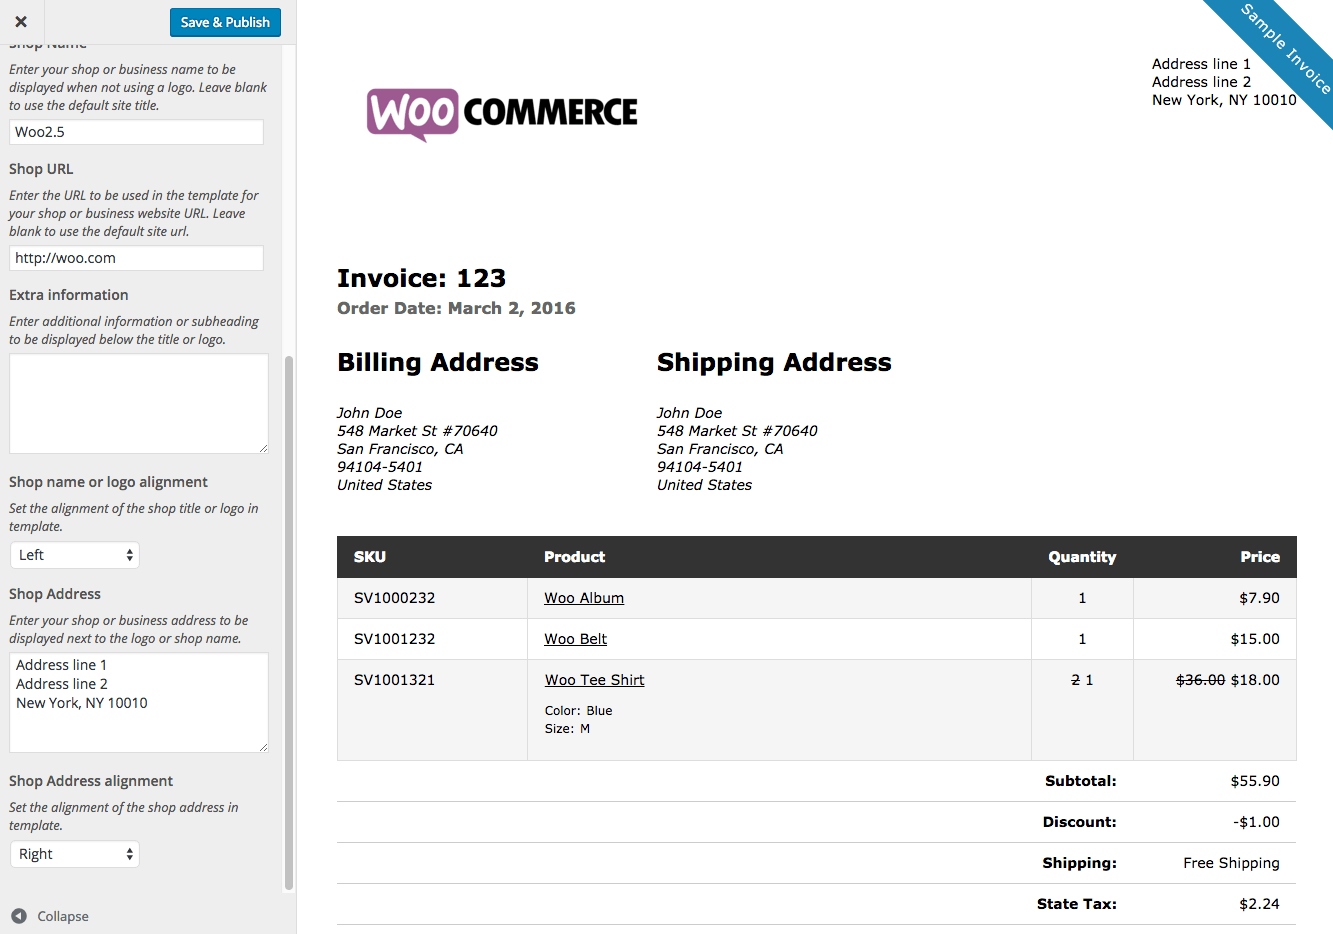 Sandiegolocksmithsus  Mesmerizing Woocommerce Print Invoices Amp Packing Lists  Woocommerce Docs With Handsome Woocommerce Print Invoices  Packing Lists Customizer With Nice Google Invoices Templates Also Online Invoicing Service In Addition Software To Create Invoices And Dealer Invoice Price Mazda Cx As Well As Send Invoice To Buyer Additionally Invoice Trading From Docswoocommercecom With Sandiegolocksmithsus  Handsome Woocommerce Print Invoices Amp Packing Lists  Woocommerce Docs With Nice Woocommerce Print Invoices  Packing Lists Customizer And Mesmerizing Google Invoices Templates Also Online Invoicing Service In Addition Software To Create Invoices From Docswoocommercecom